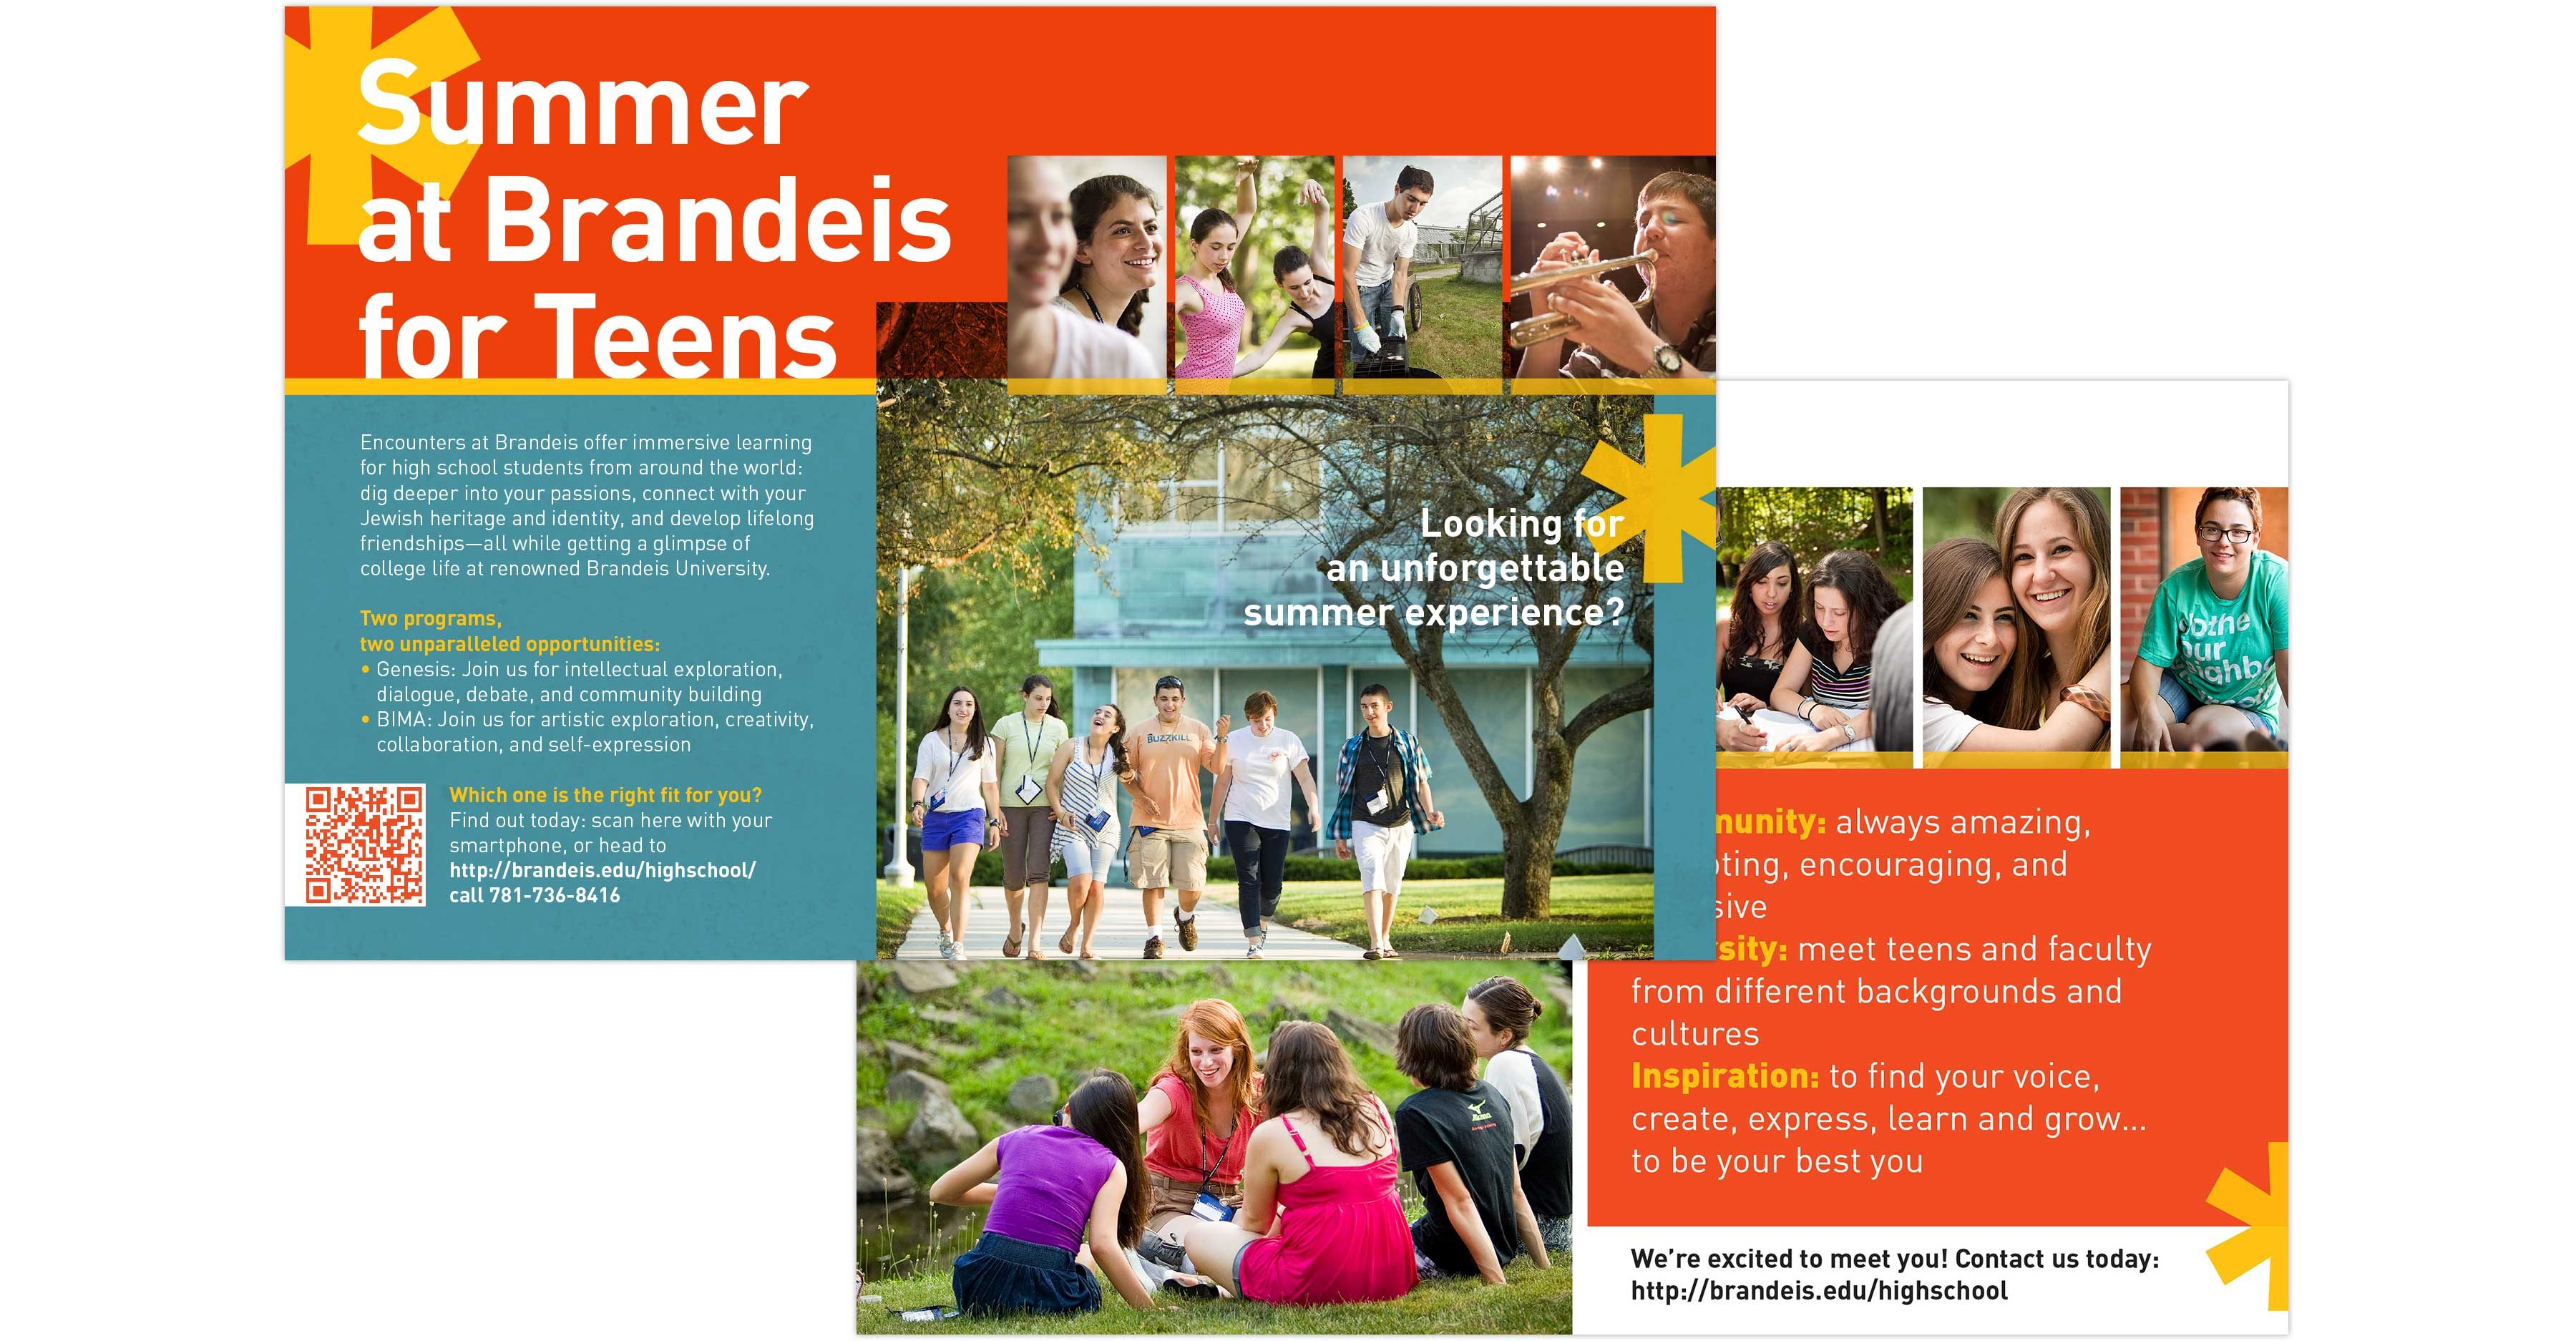 Brandeis High School Program postcard front and back view: Summer at Brandeis for Teens